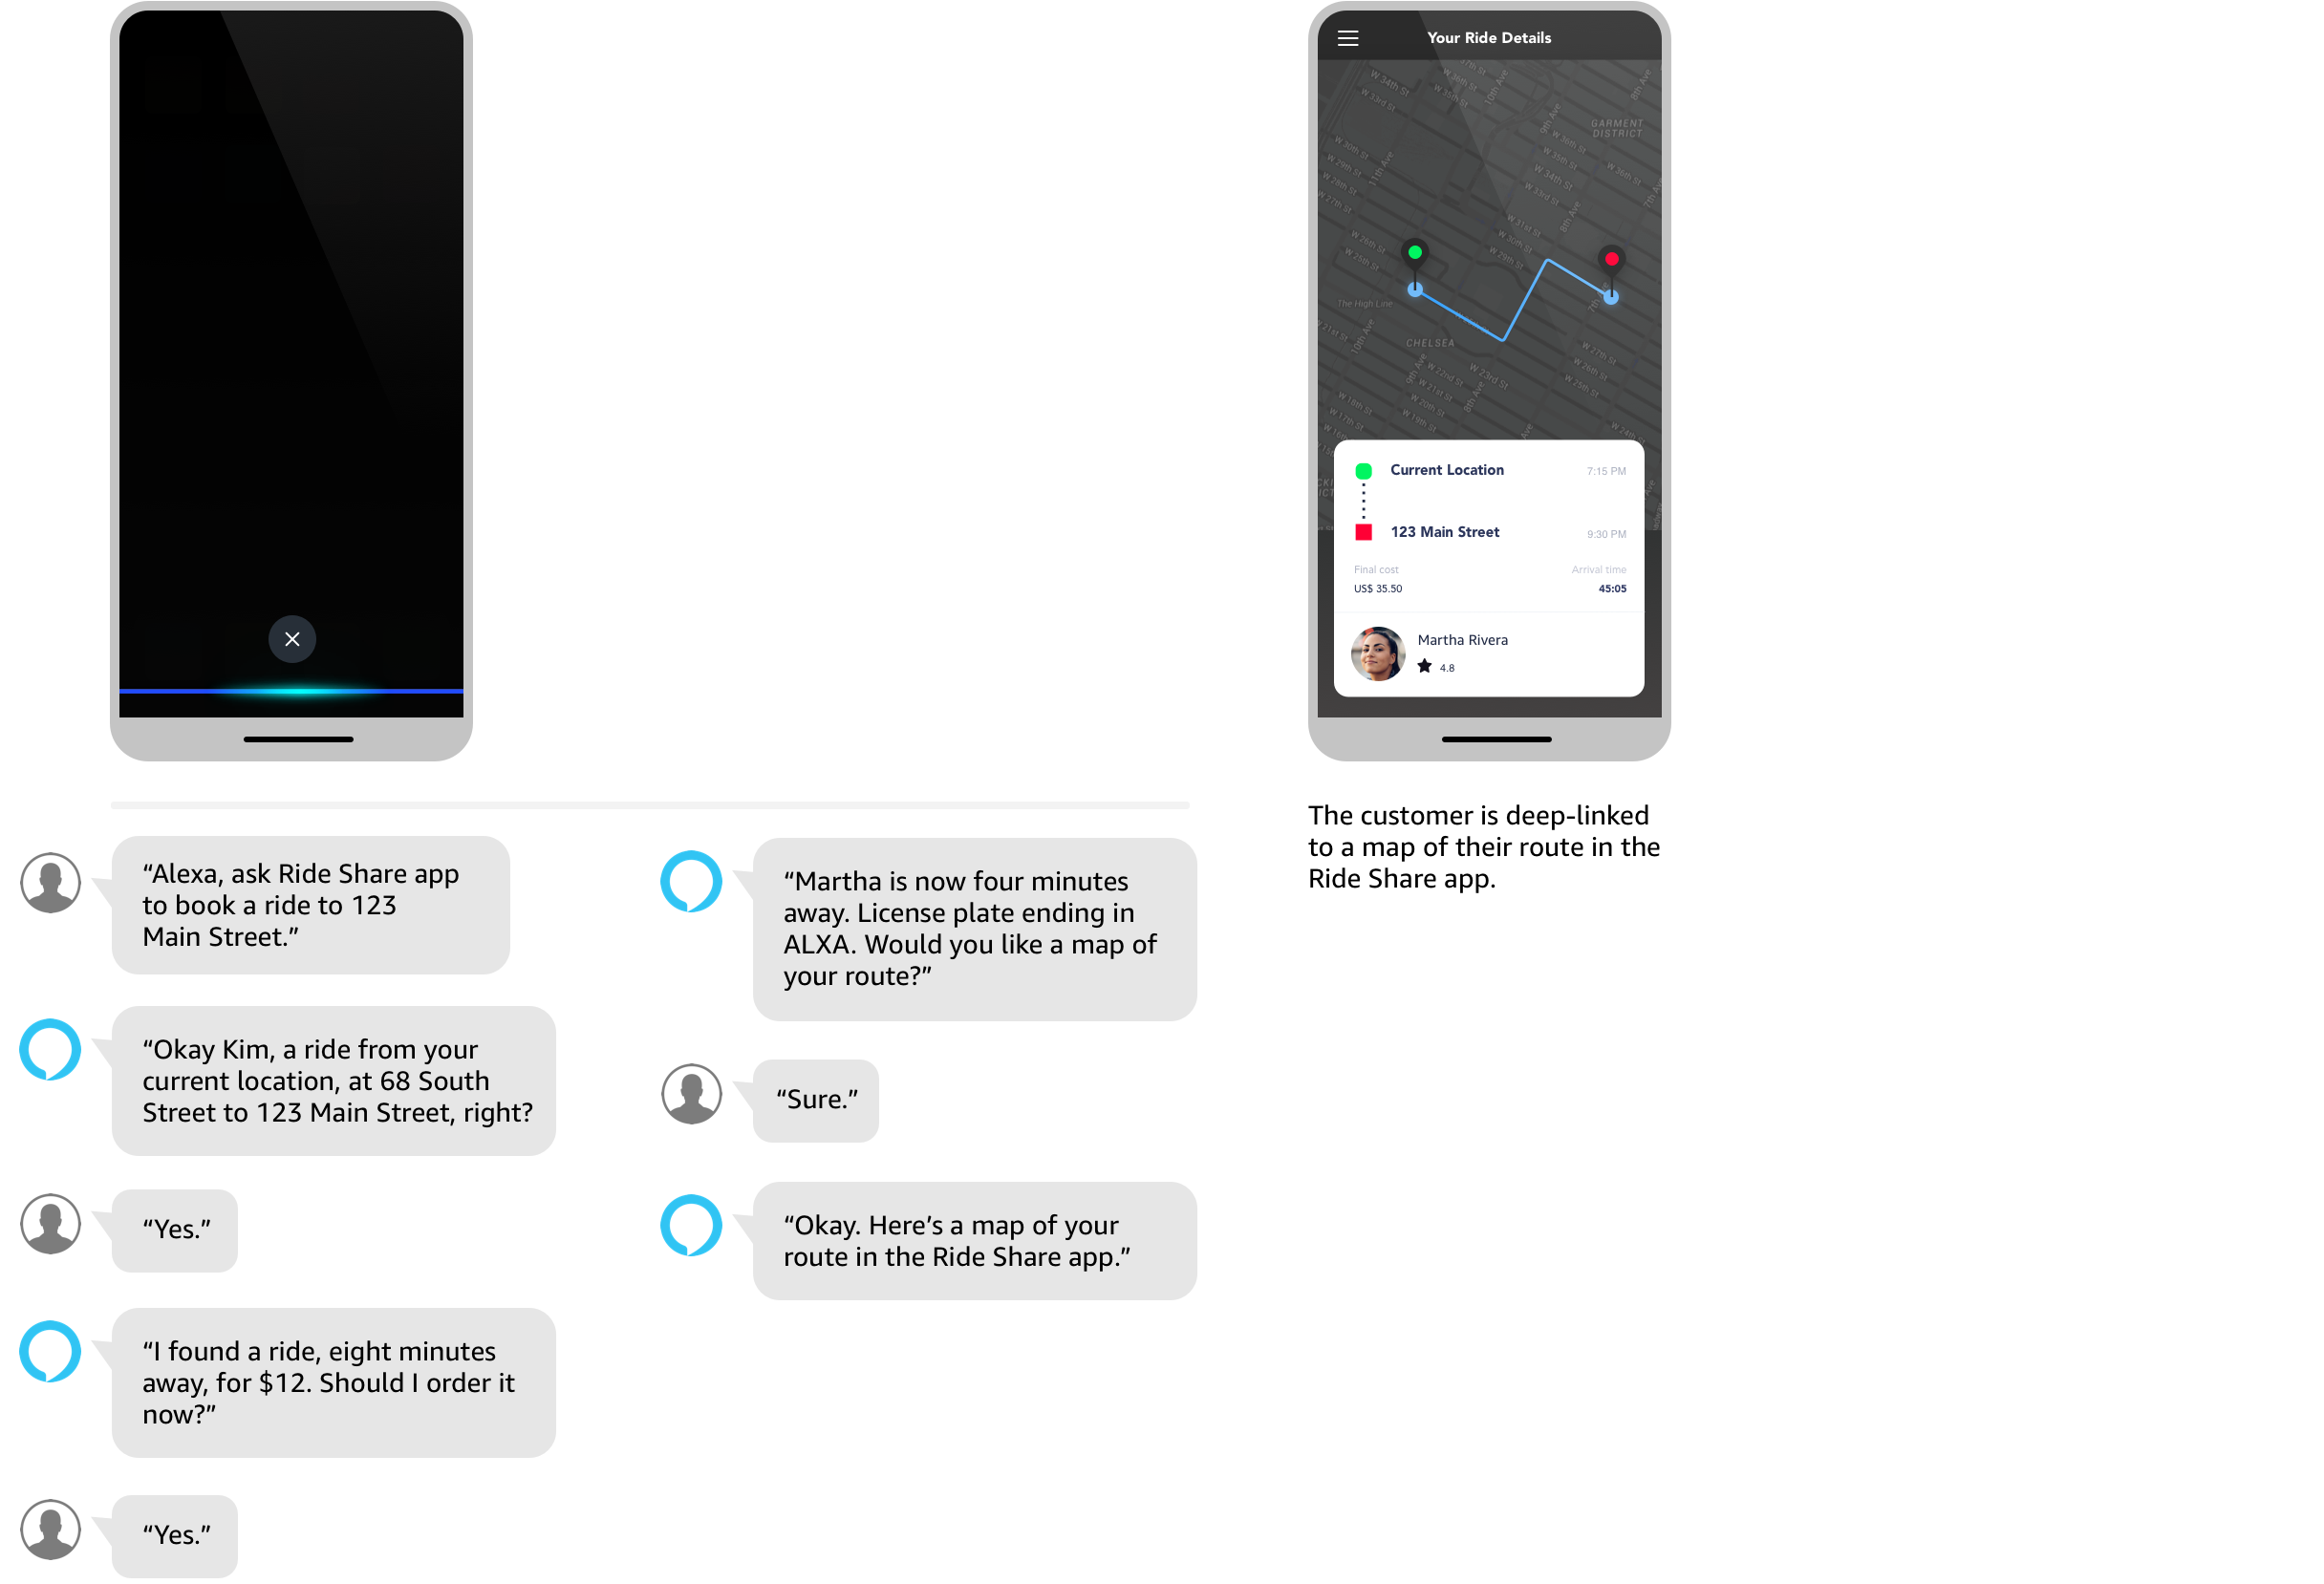 Image of voice enabled actions for a ride share app. Customer asks Alexa to ask Ride Share app to book a ride to 123 Main street. Alexa responds with Okay, Kim, a ride from your current location, at 68 South Street to 123 Main Street, right? Customer responds with Yes. Alexa responds again with I found a ride, eight minutes away, for 12 dollars. Should I order it now? Customer responds Yes. Alexa alerts the customer a few minutes later with Martha is now four minutes away. License plate ending in ALXA. Would you like a map of your route? Customer responds with Sure. Alexa ends session with Okay, Here's a map of your route in the Ride Share app. The customer is deep-linked to a map of their route in the Ride share app.